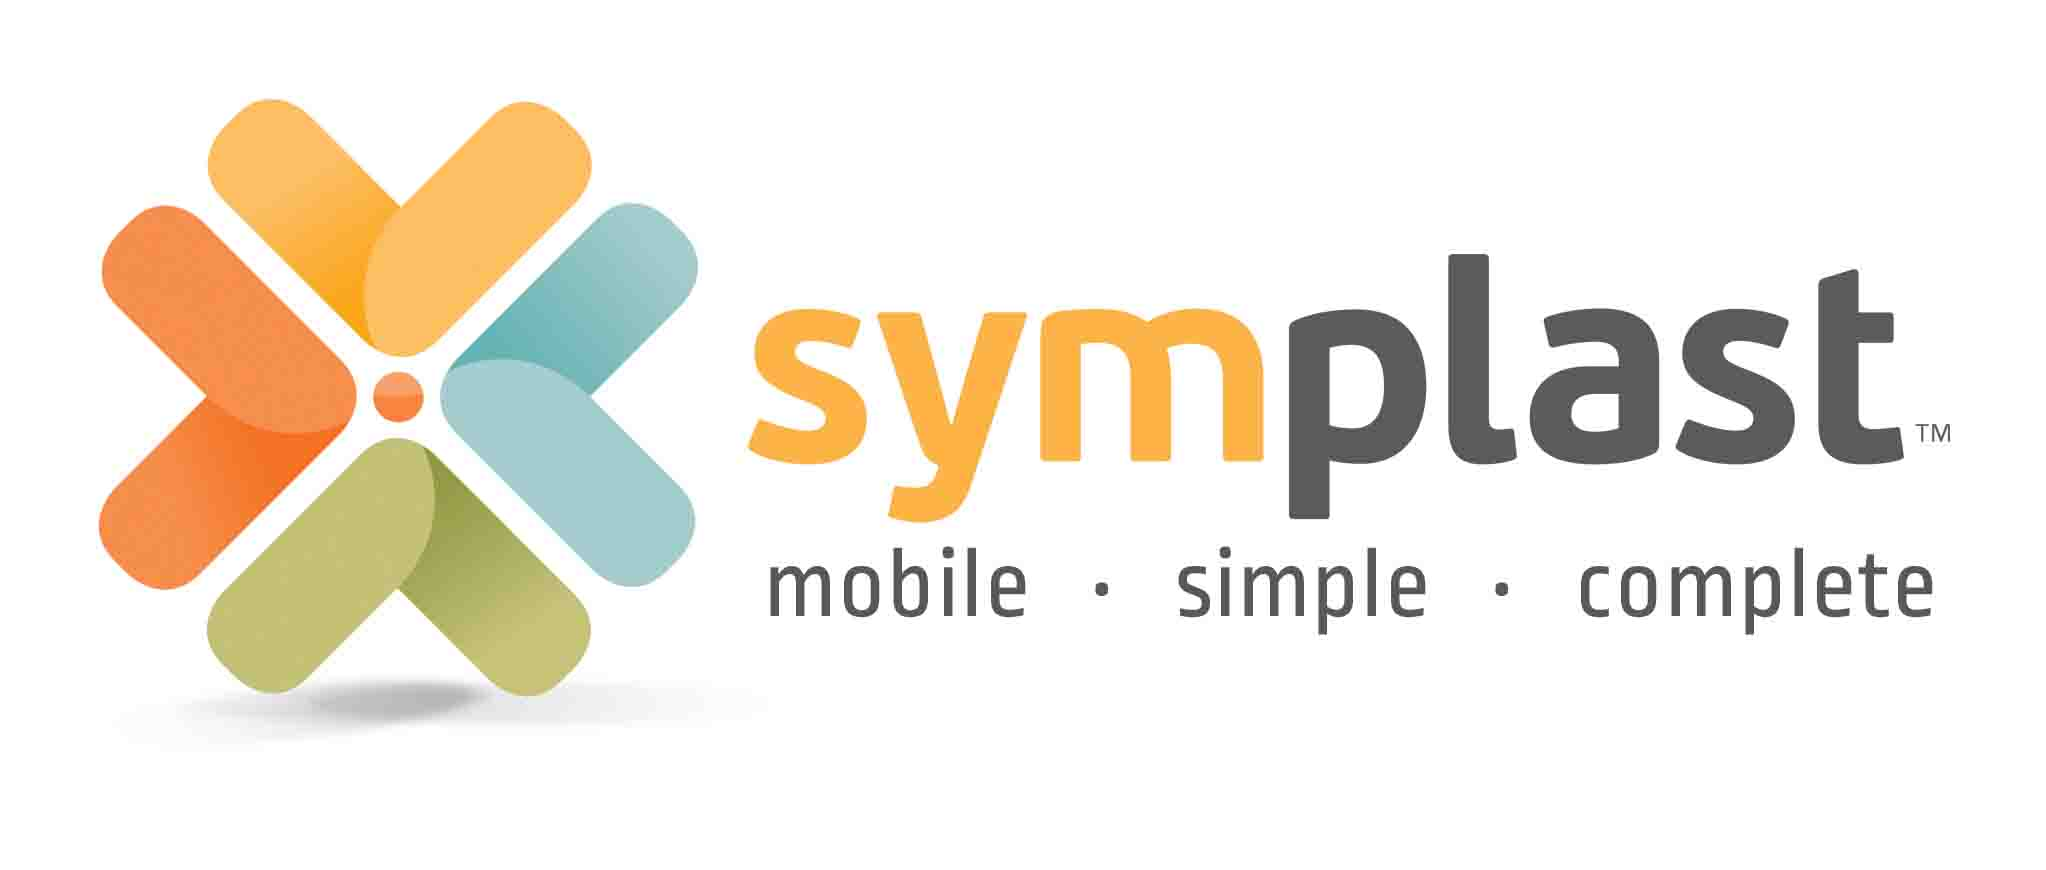 Symplast is the first complete, 100% mobile software for plastic surgeons